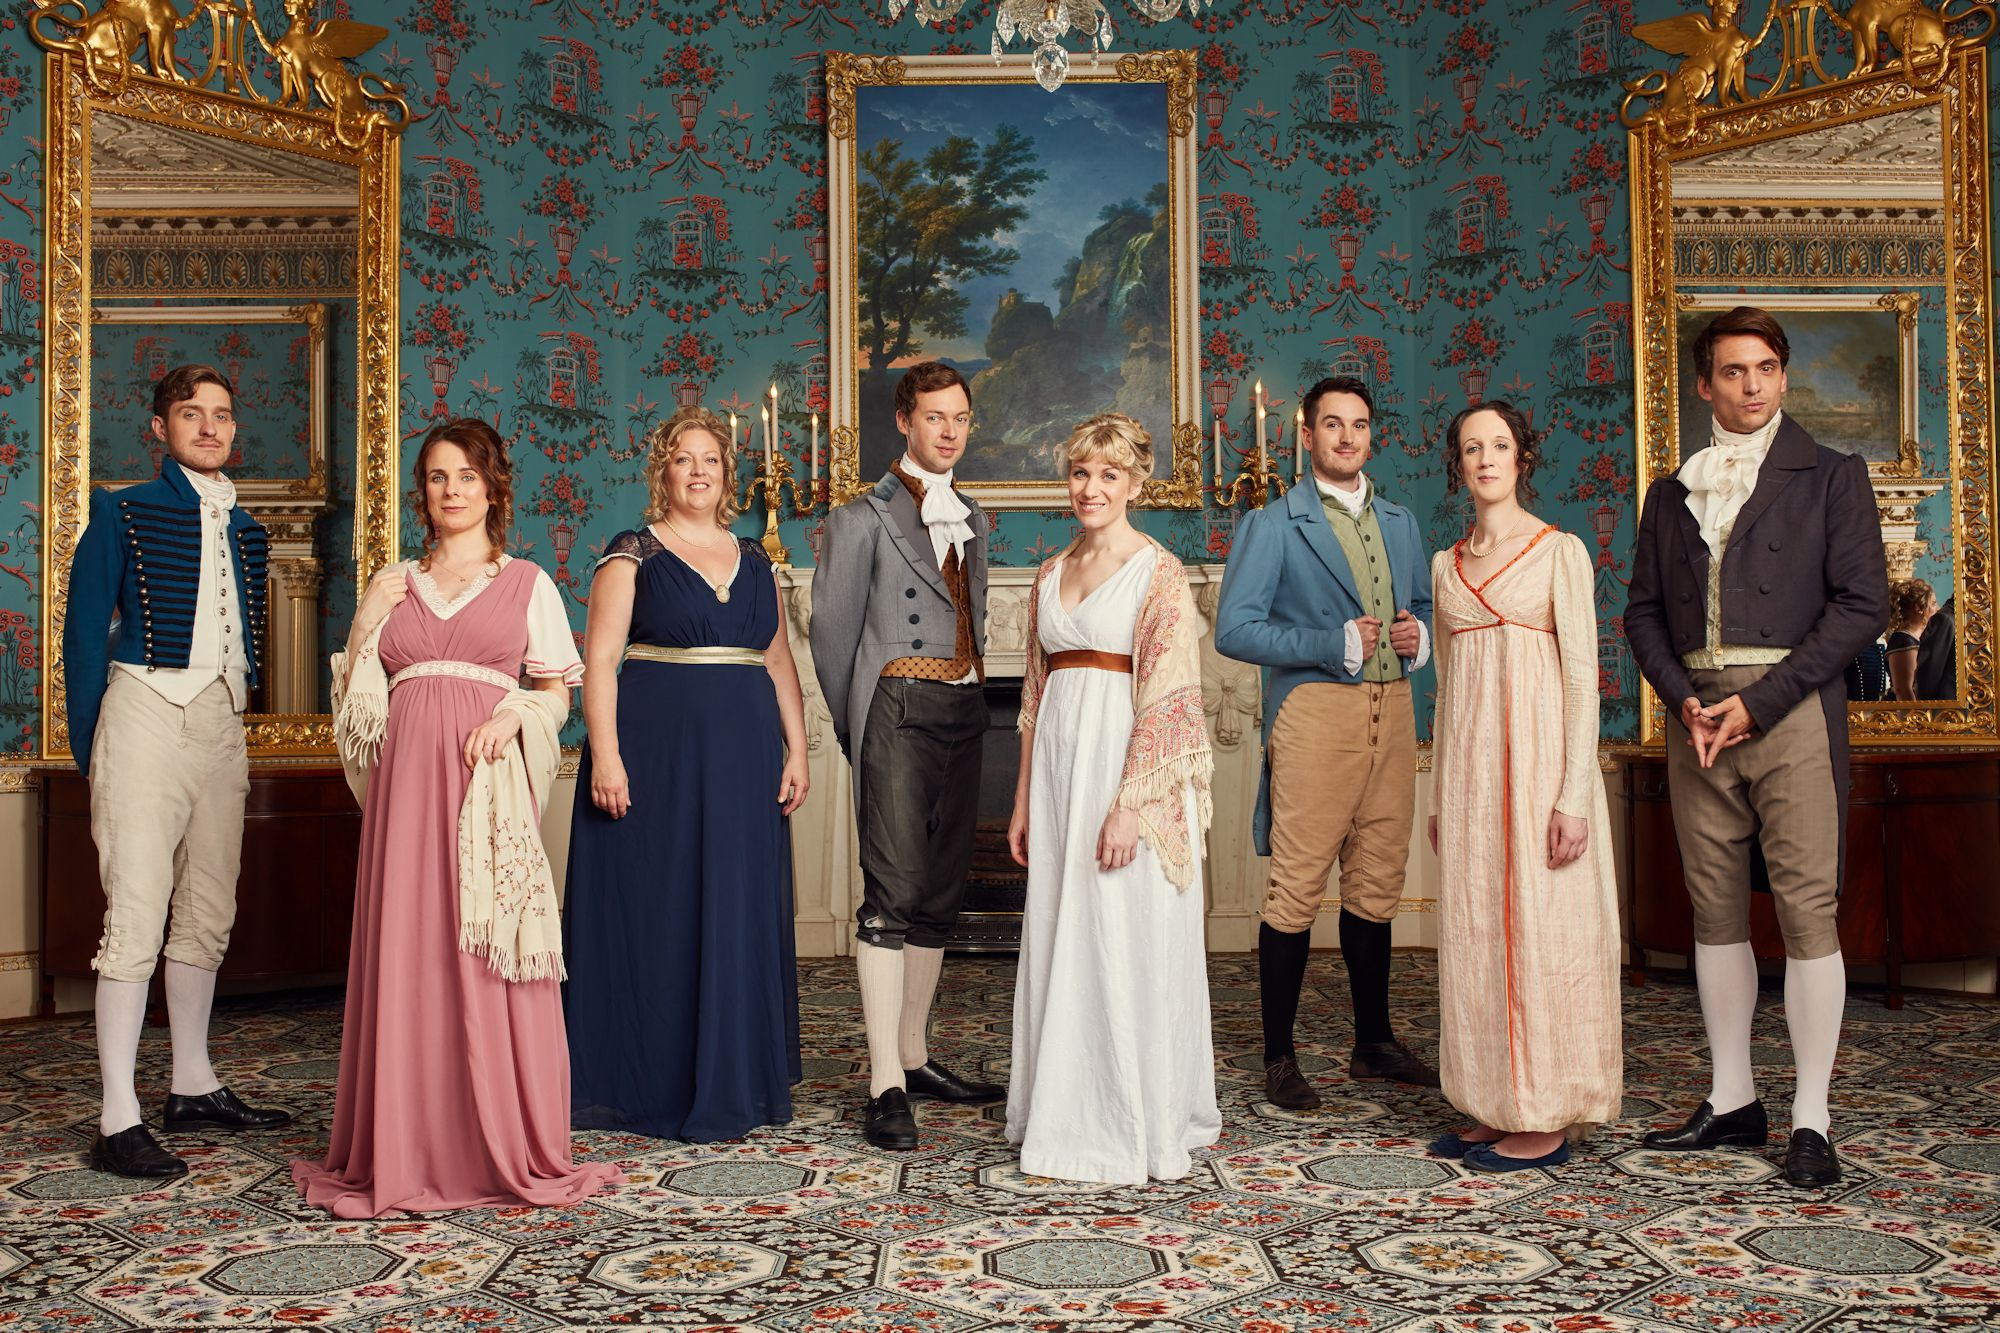 Eight performers in regency costumes line up in front of a painting in a large manor house.